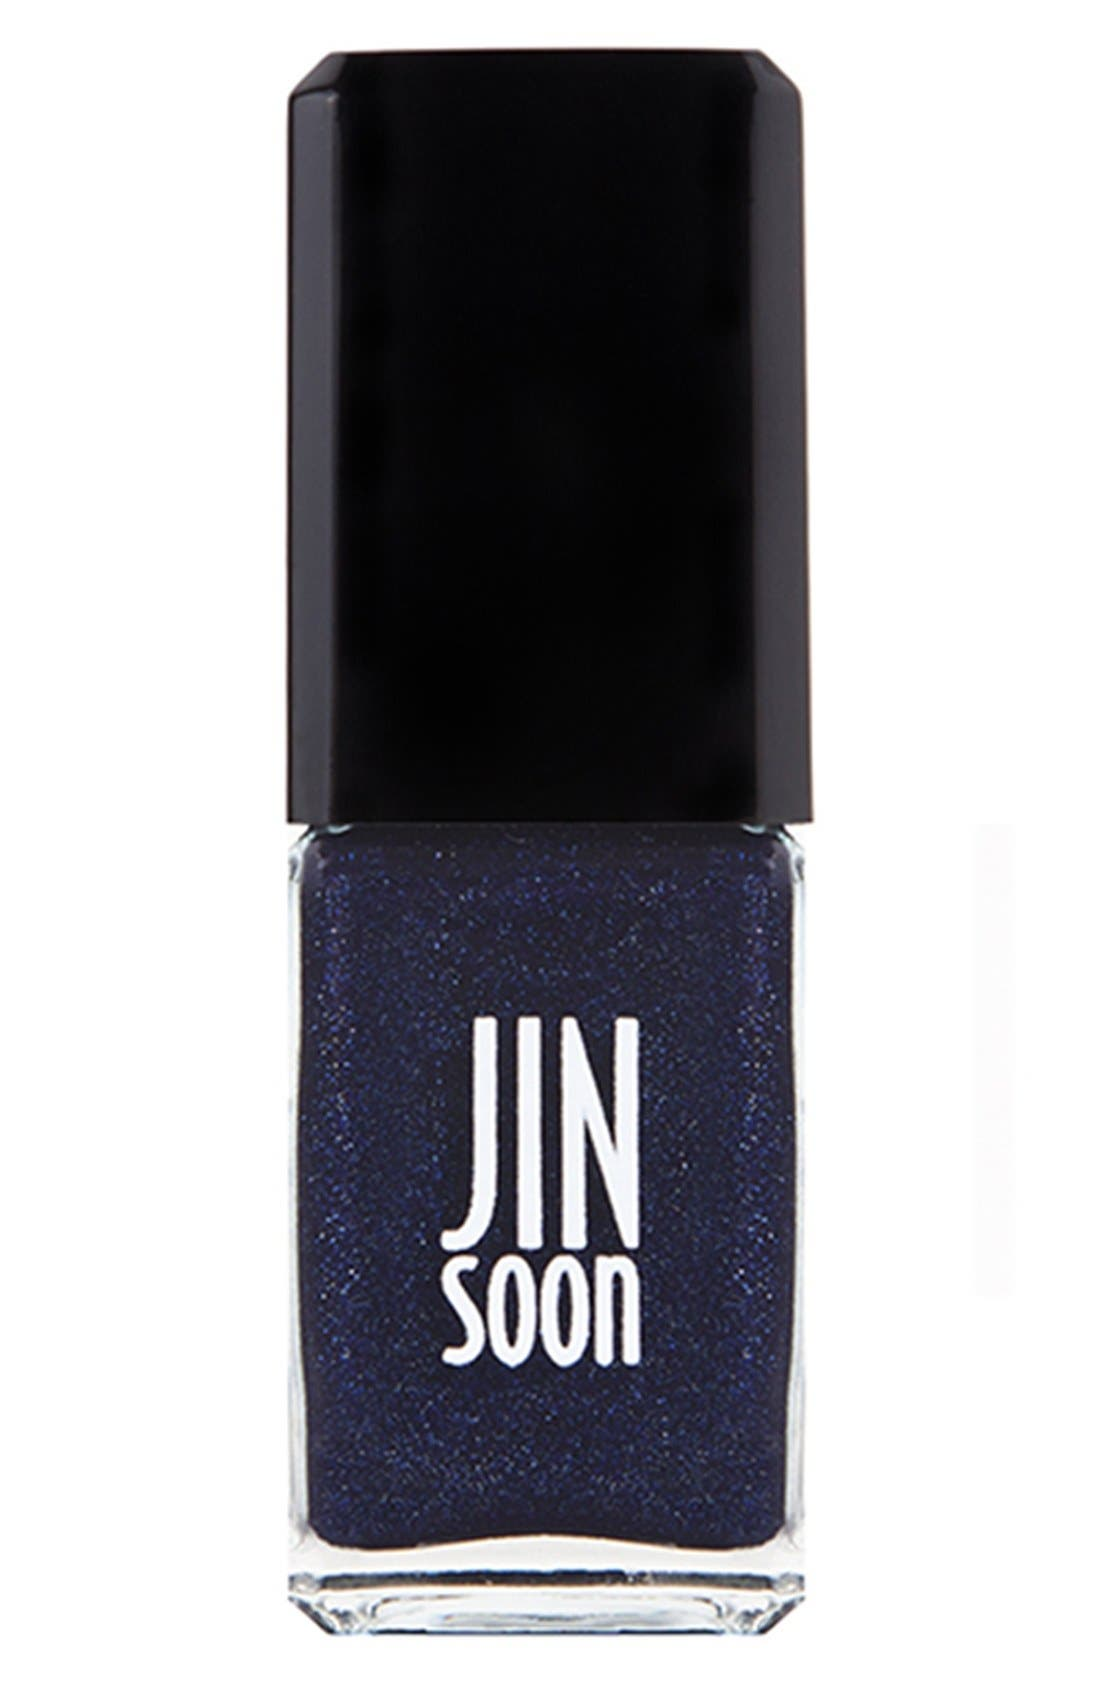 JINsoon 'Azurite' Nail Lacquer